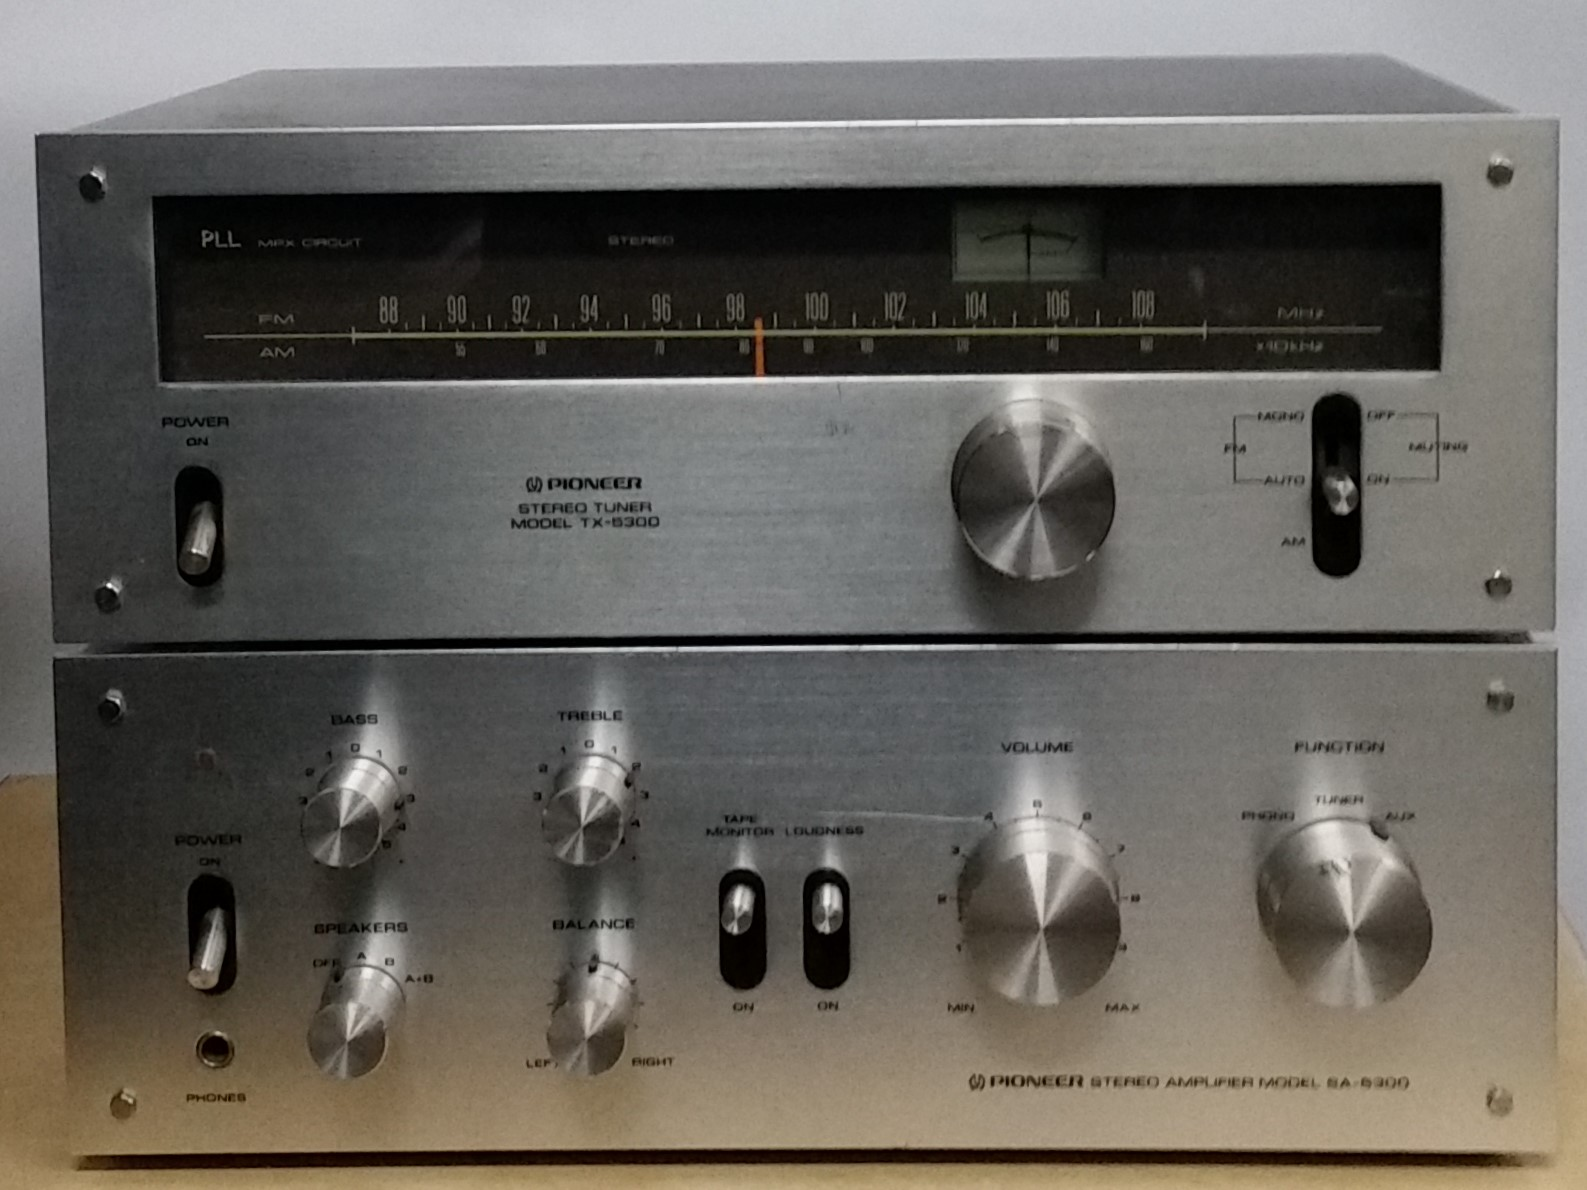 Pioneer SA-5300 amplifier with matching TX-5300 tuner    Very nice amp/tuner combo, has minor blemishes on face and top of amp   The Pioneer SA-5300 is an integrated stereo amplifier producing 10 watts per channel with no more than 0.8% total harmonic distortion.  Features include a tape monitor, loudness control and 2 pairs of speaker outlets.  Power output: 10 watts per channel into 8Ω (stereo)  Frequency response: 20Hz to 30kHz  Total harmonic distortion: 0.08%  Input sensitivity: 2.5mV (MM), 150mV (line)  Signal to noise ratio: 70dB (MM), 85dB (line)  Dimensions: 350 x 125 x 282mm  Weight: 6.4kg  Year: 1976   $325 the pair..